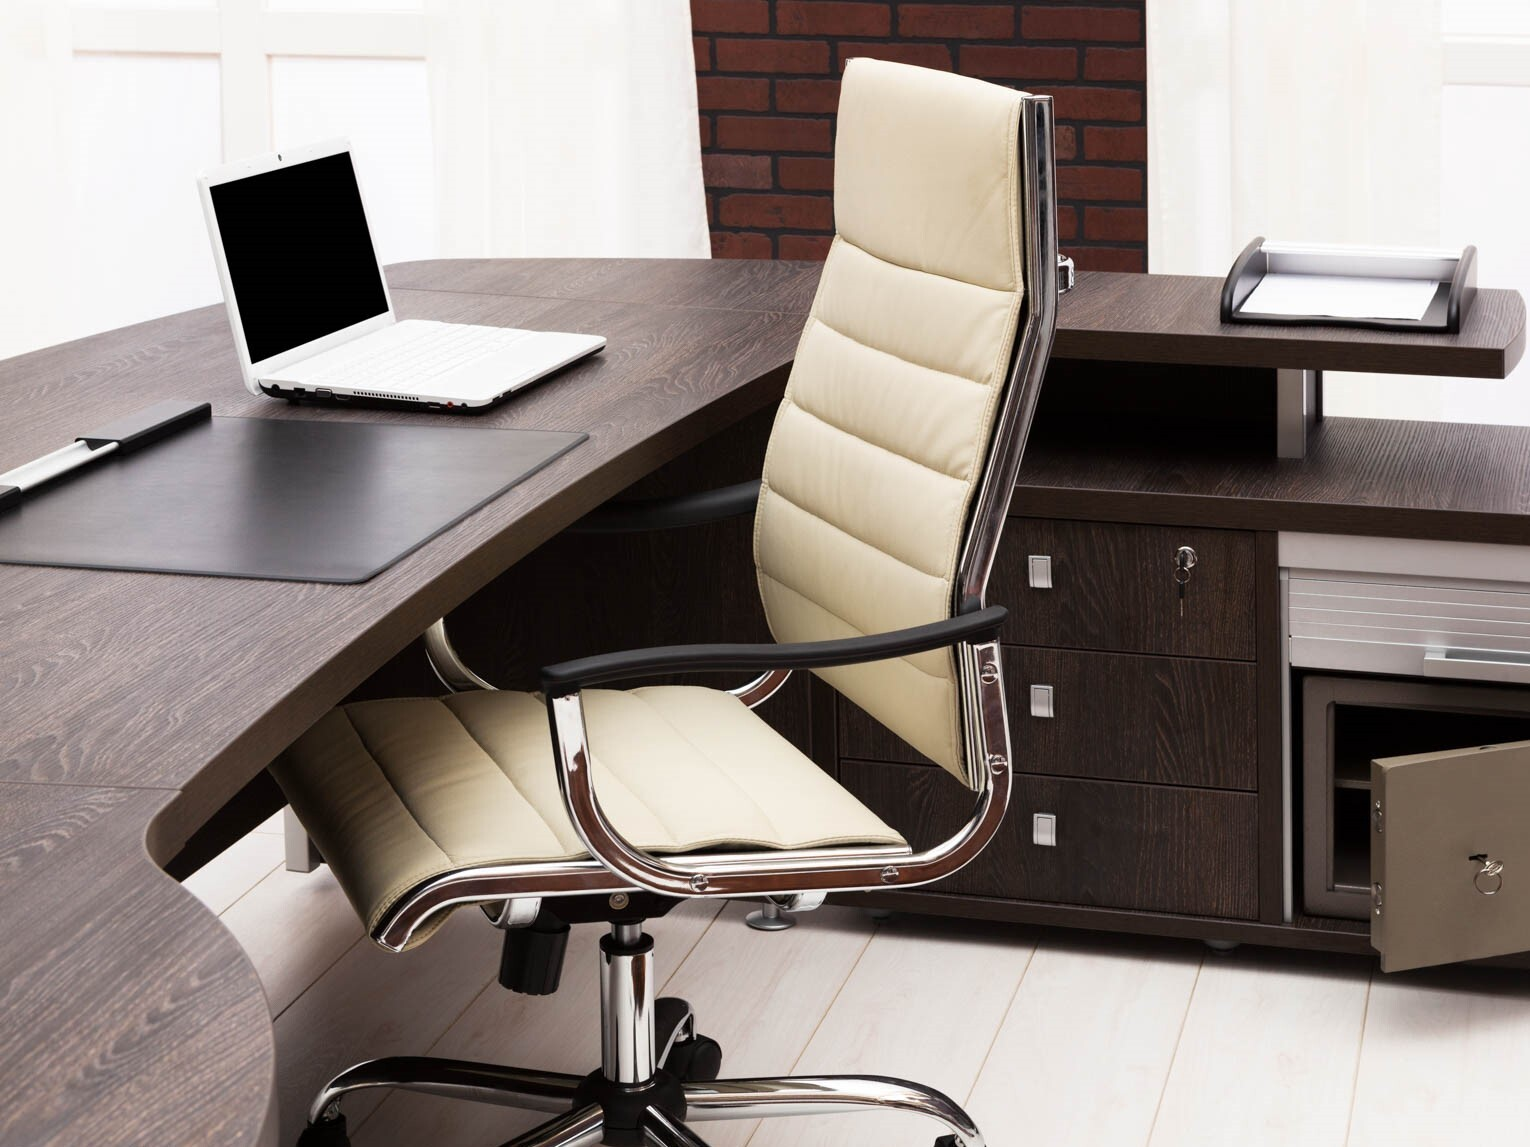 Furniture_Office_shutterstock_123936604.jpg